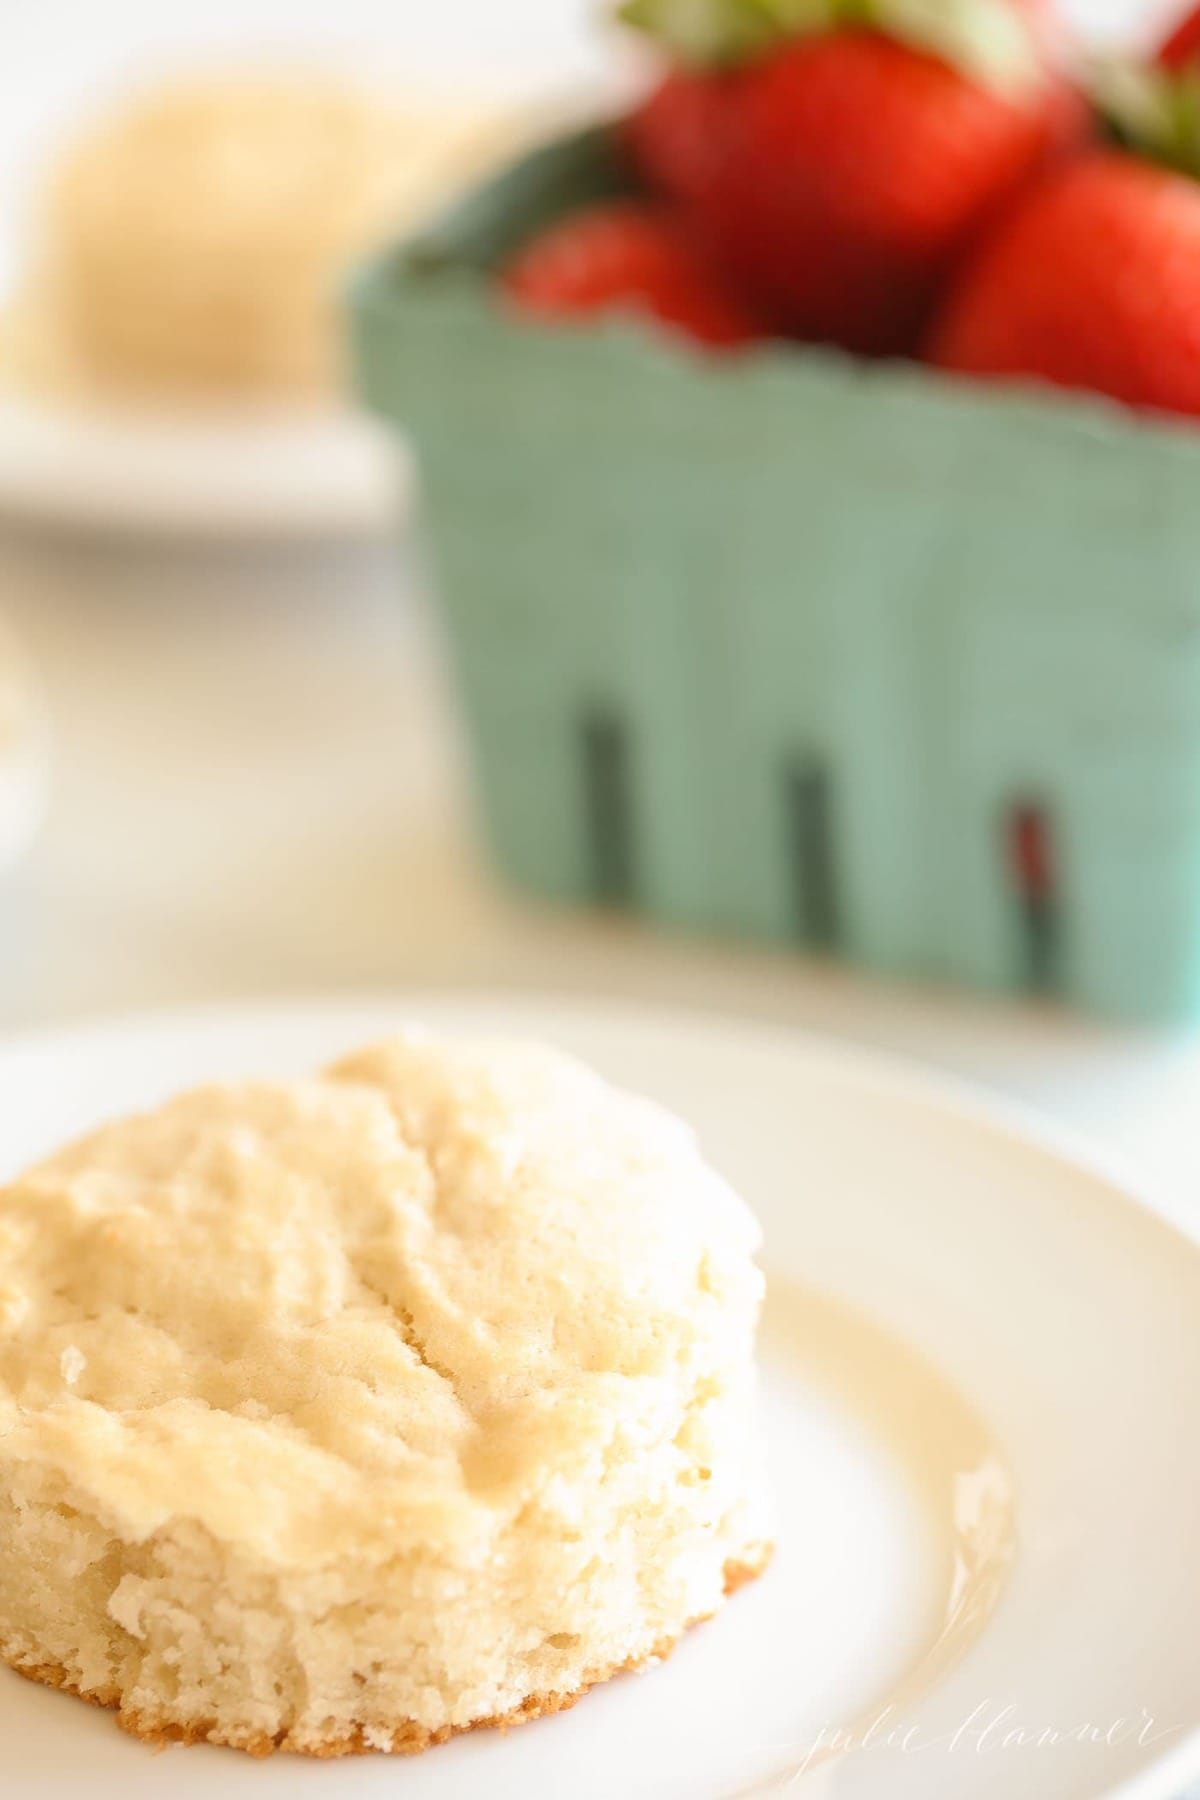 A cutout strawberry shortcake biscuit, with a turquoise carton of strawberries behind.